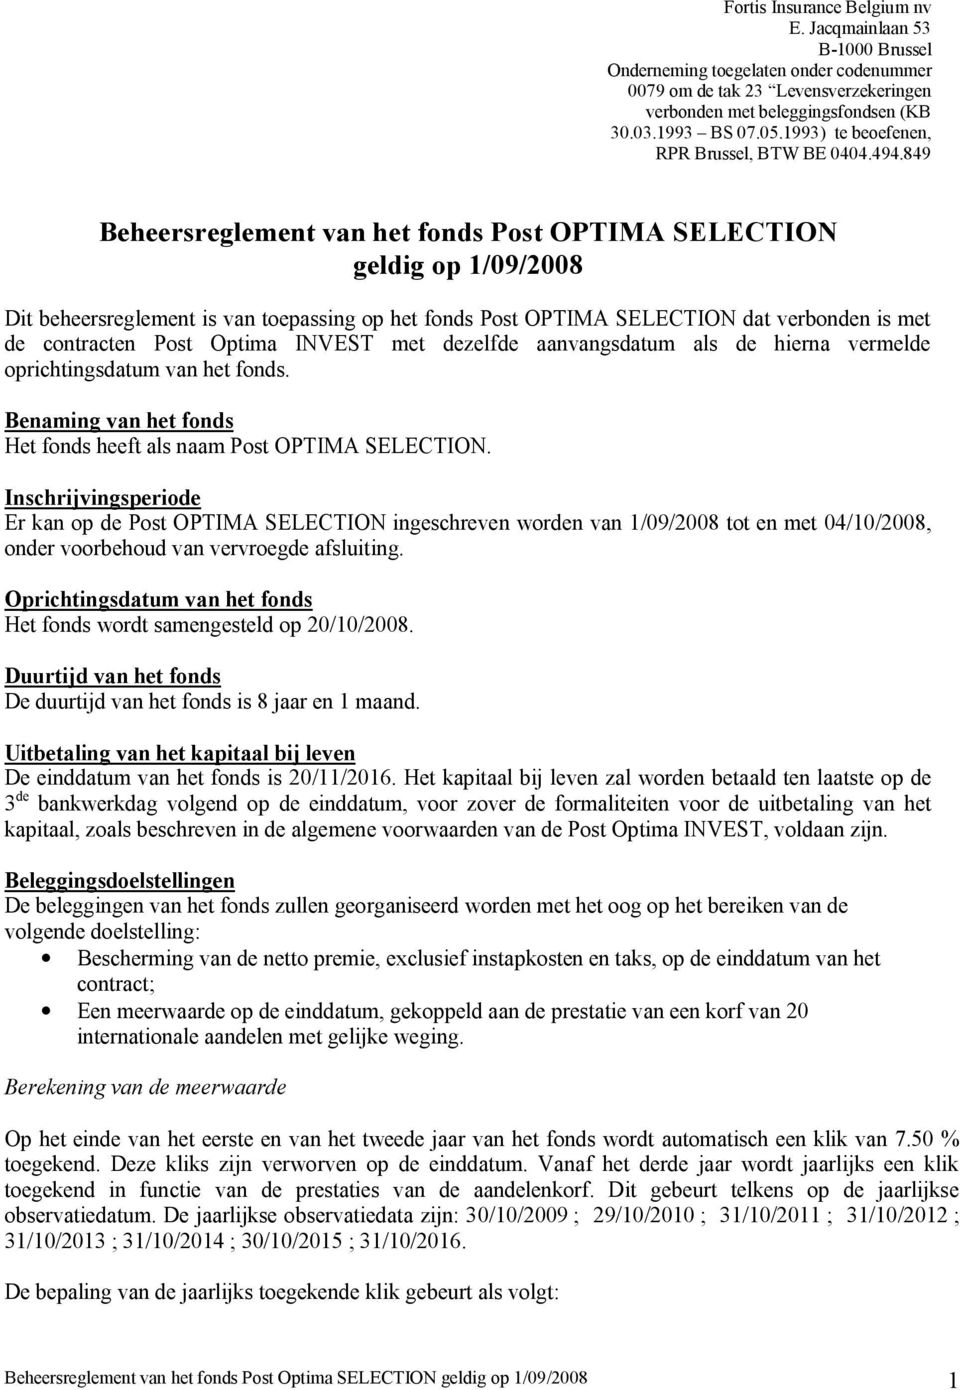 849 Beheersreglement van het fonds Post OPTIMA SELECTION geldig op 1/09/2008 Dit beheersreglement is van toepassing op het fonds Post OPTIMA SELECTION dat verbonden is met de contracten Post Optima